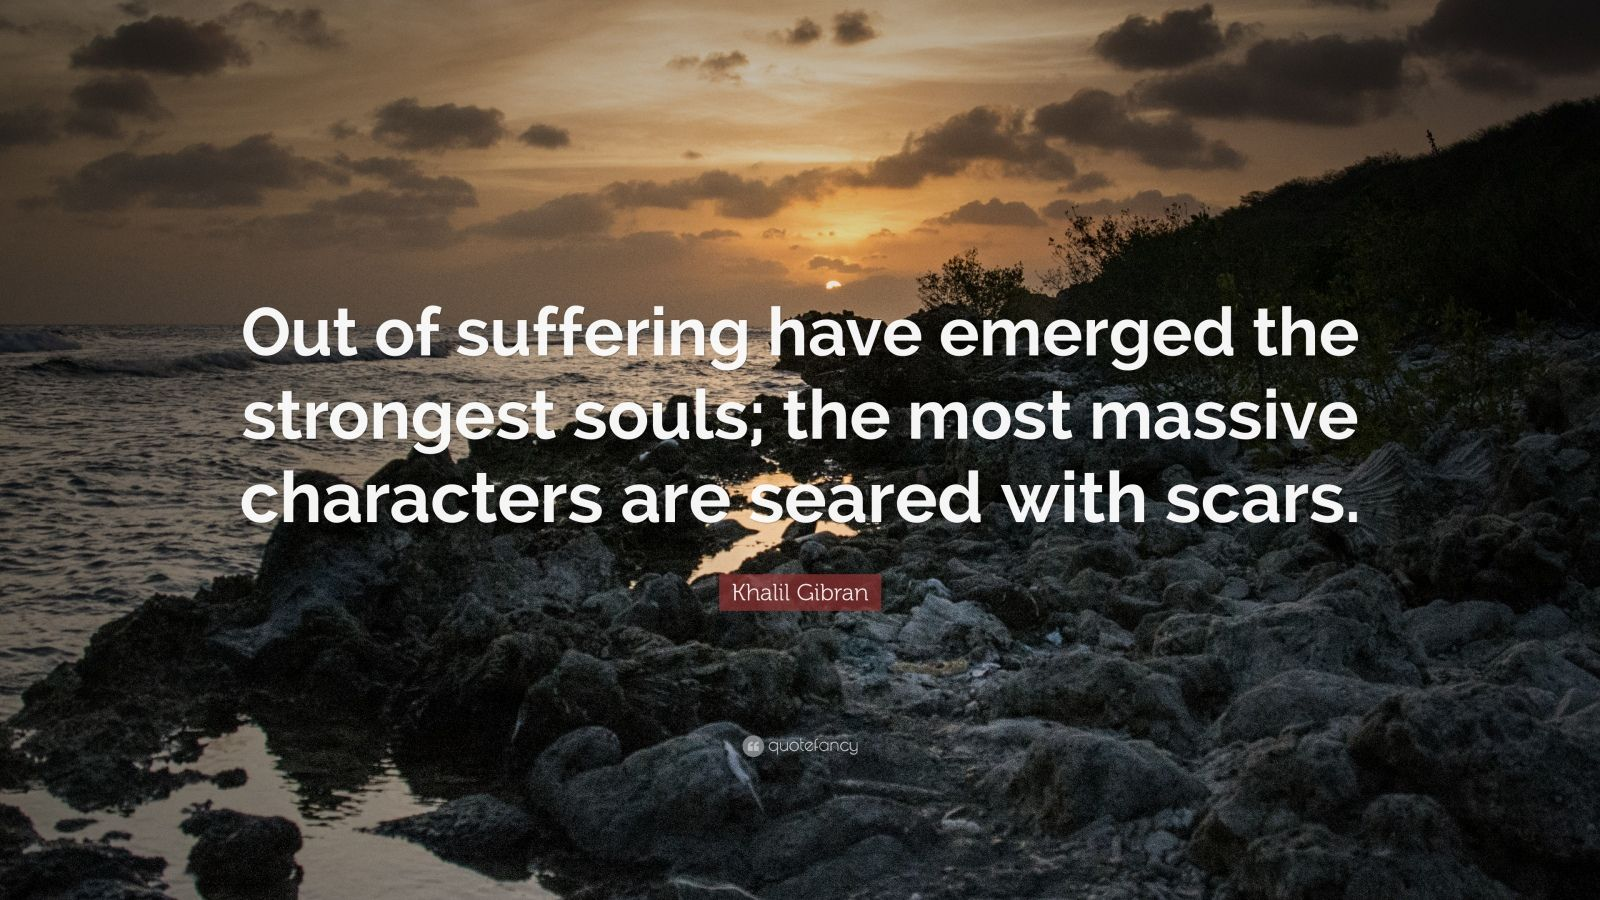 Wallpapers Philosophy Quotes Khalil Gibran Quote Out Of Suffering Have Emerged The